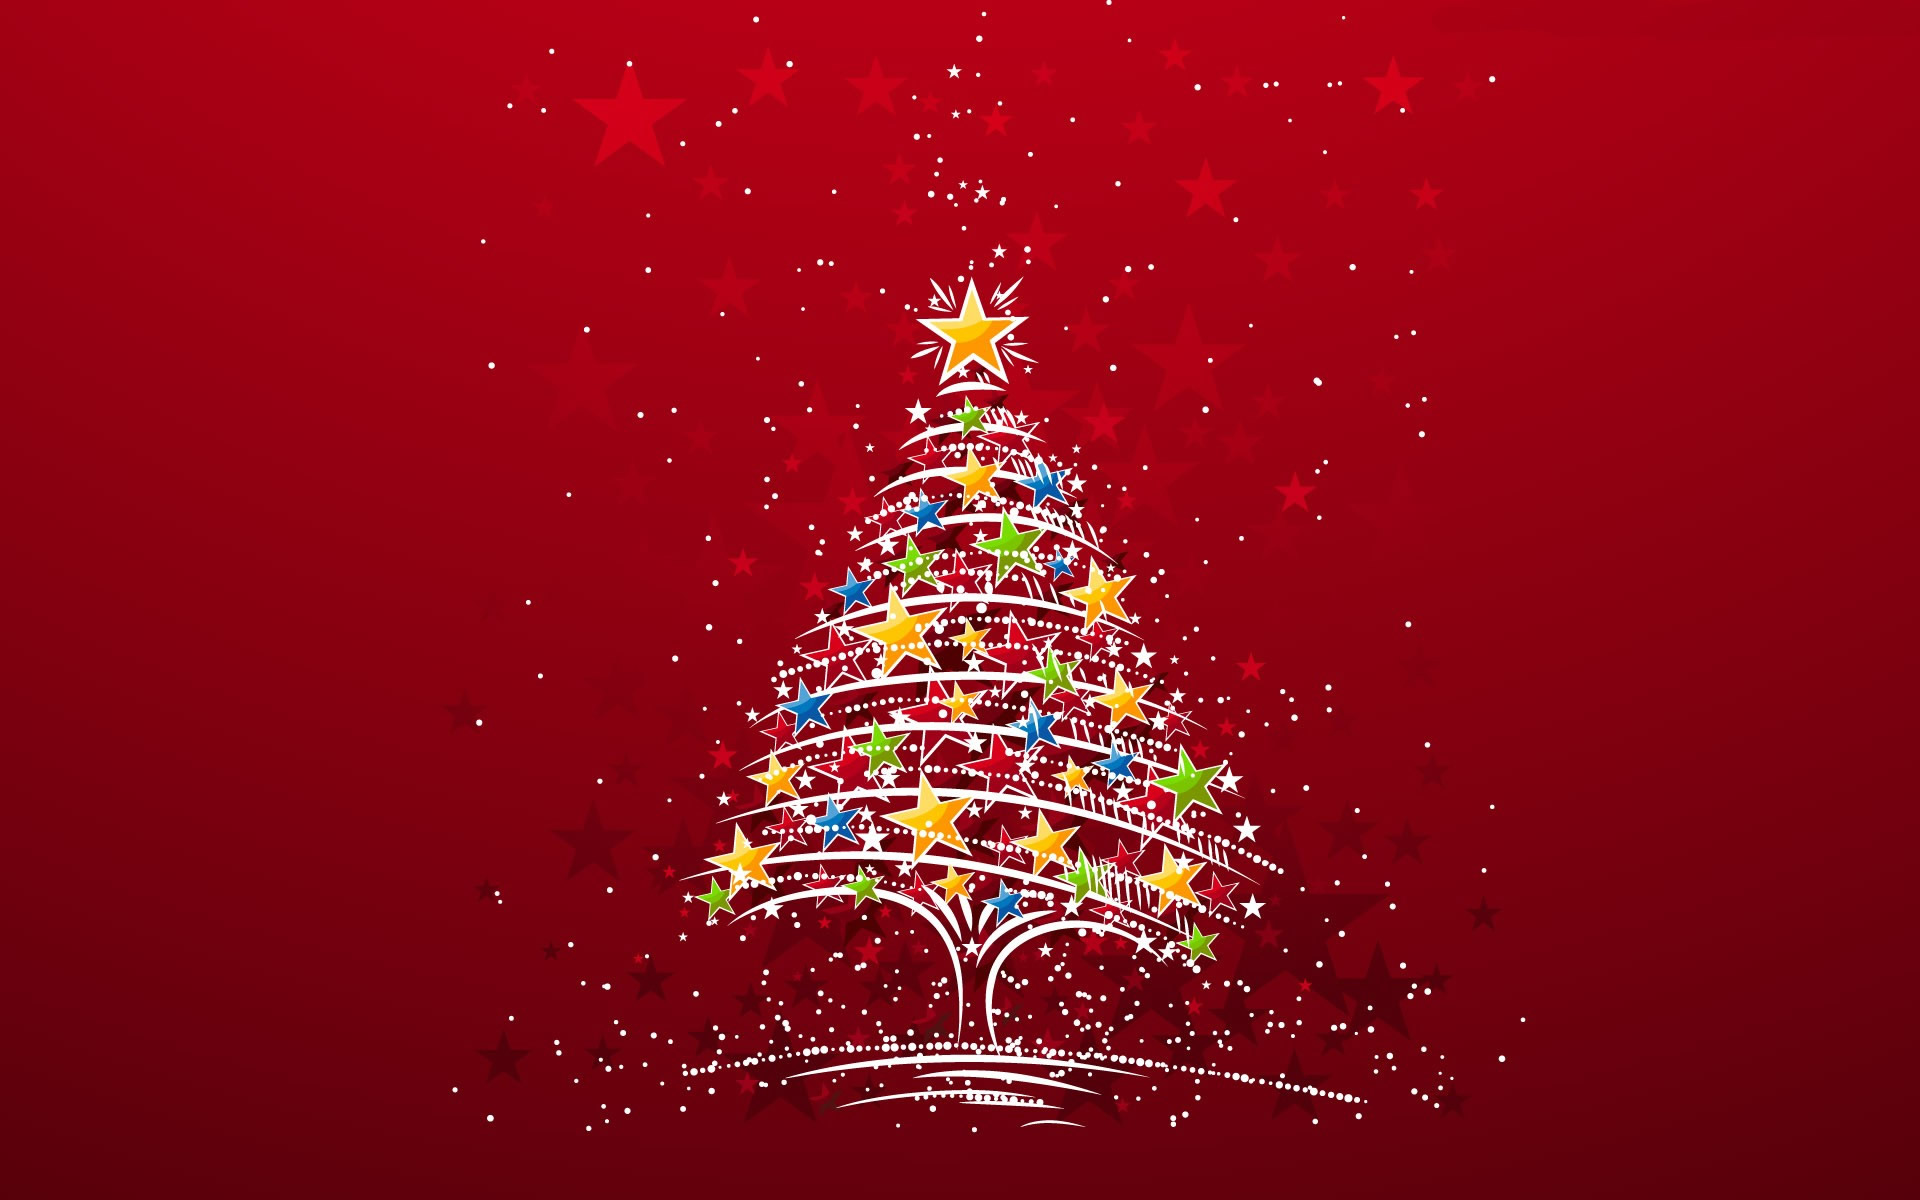 xmas wallpapers hd - sf wallpaper